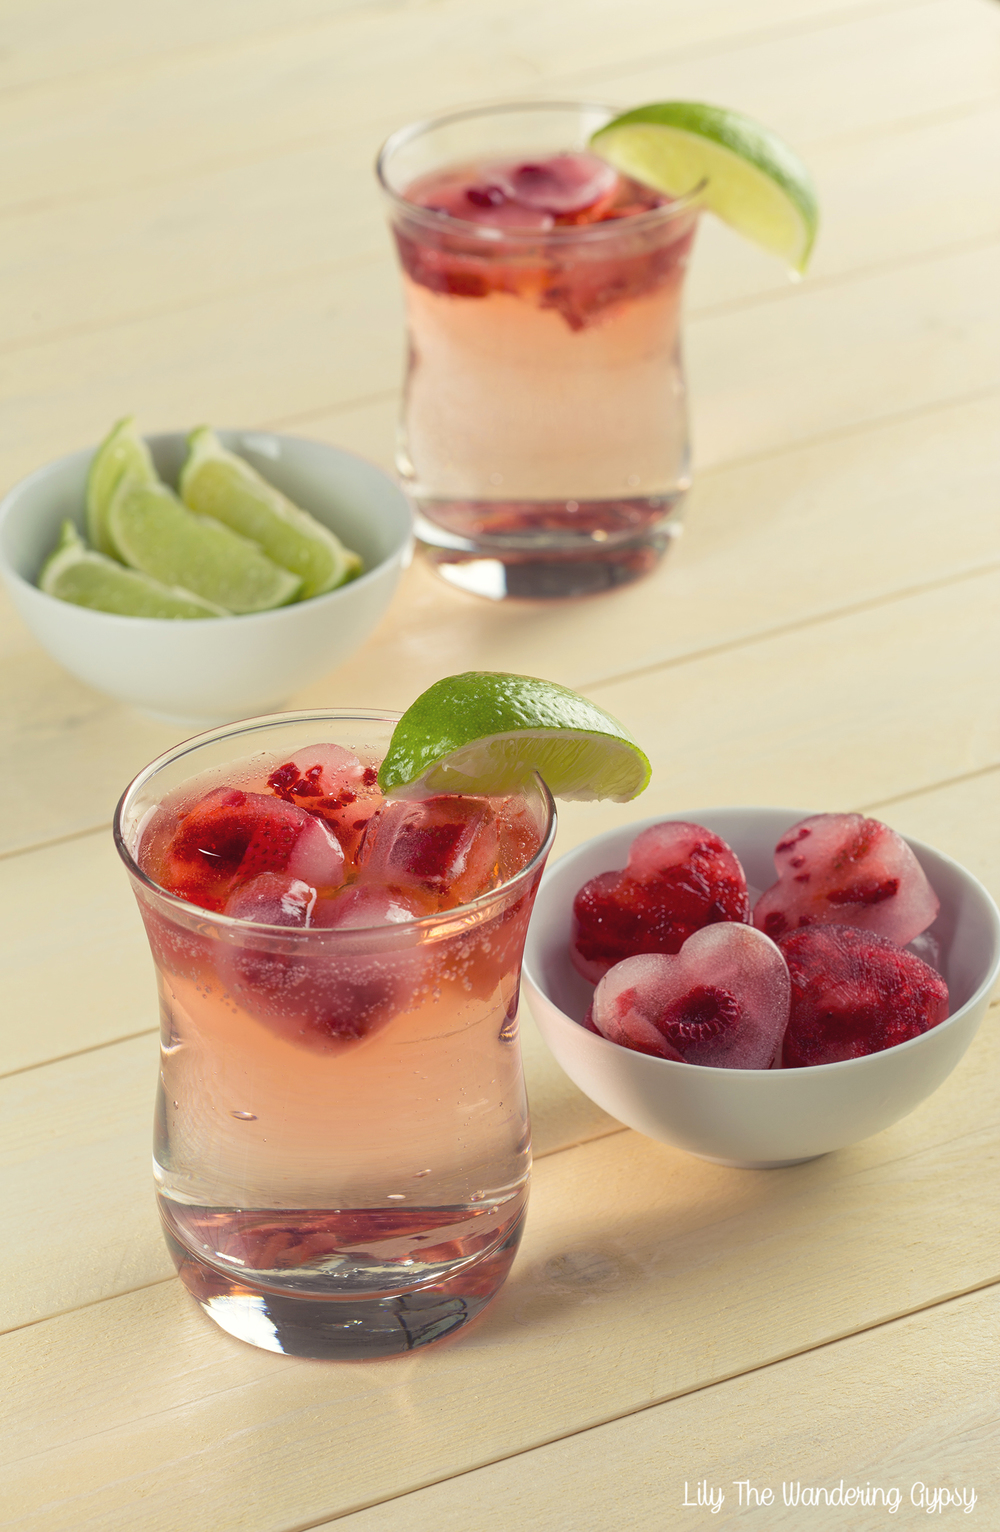 Gin and Tonic - With Raspberry Infused Ice Cubes